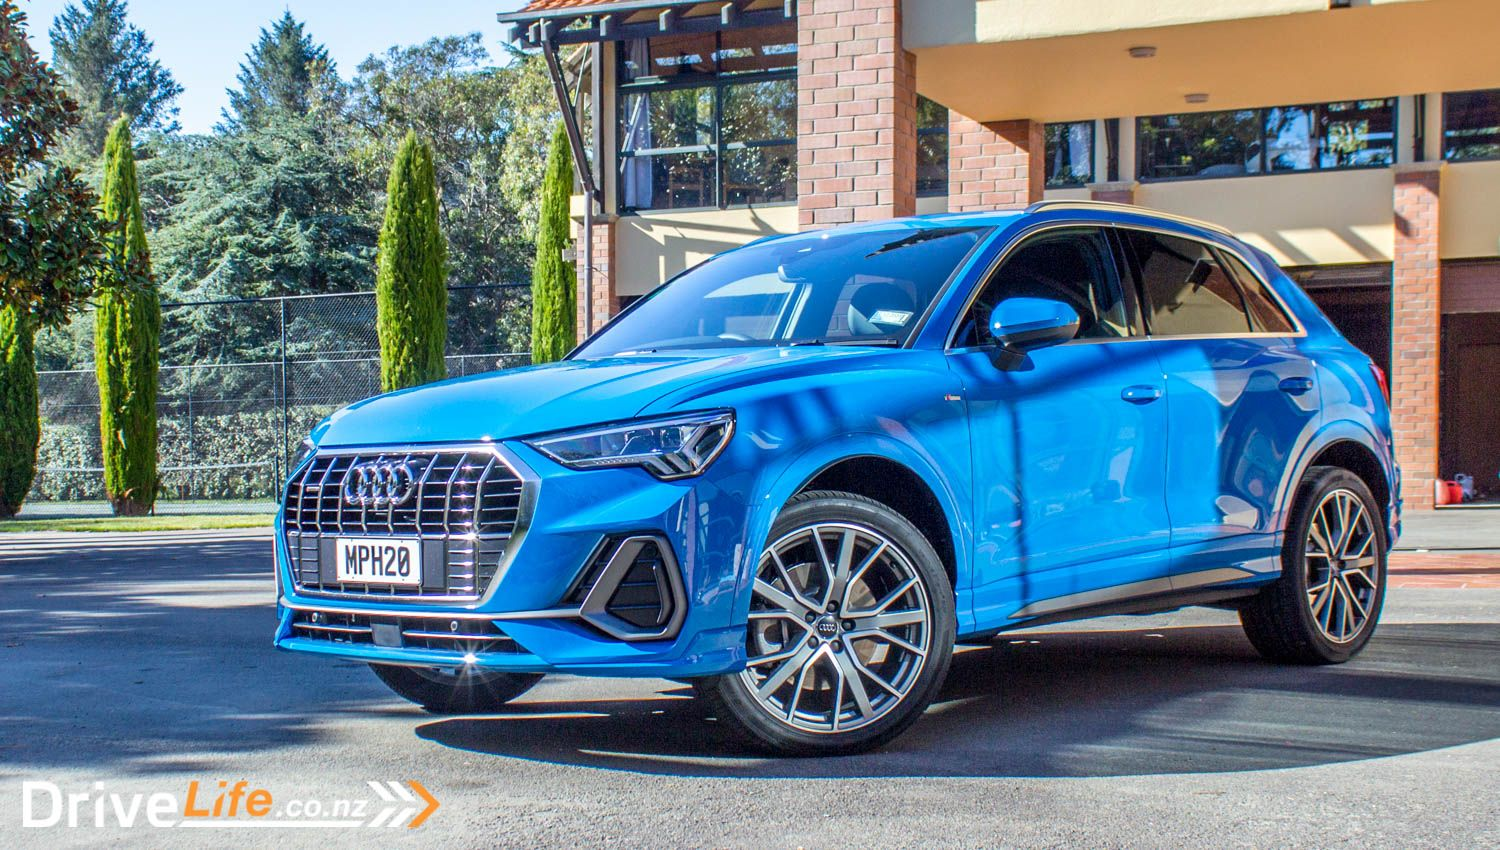 When we went to the launch of the new Audi Q3, we really